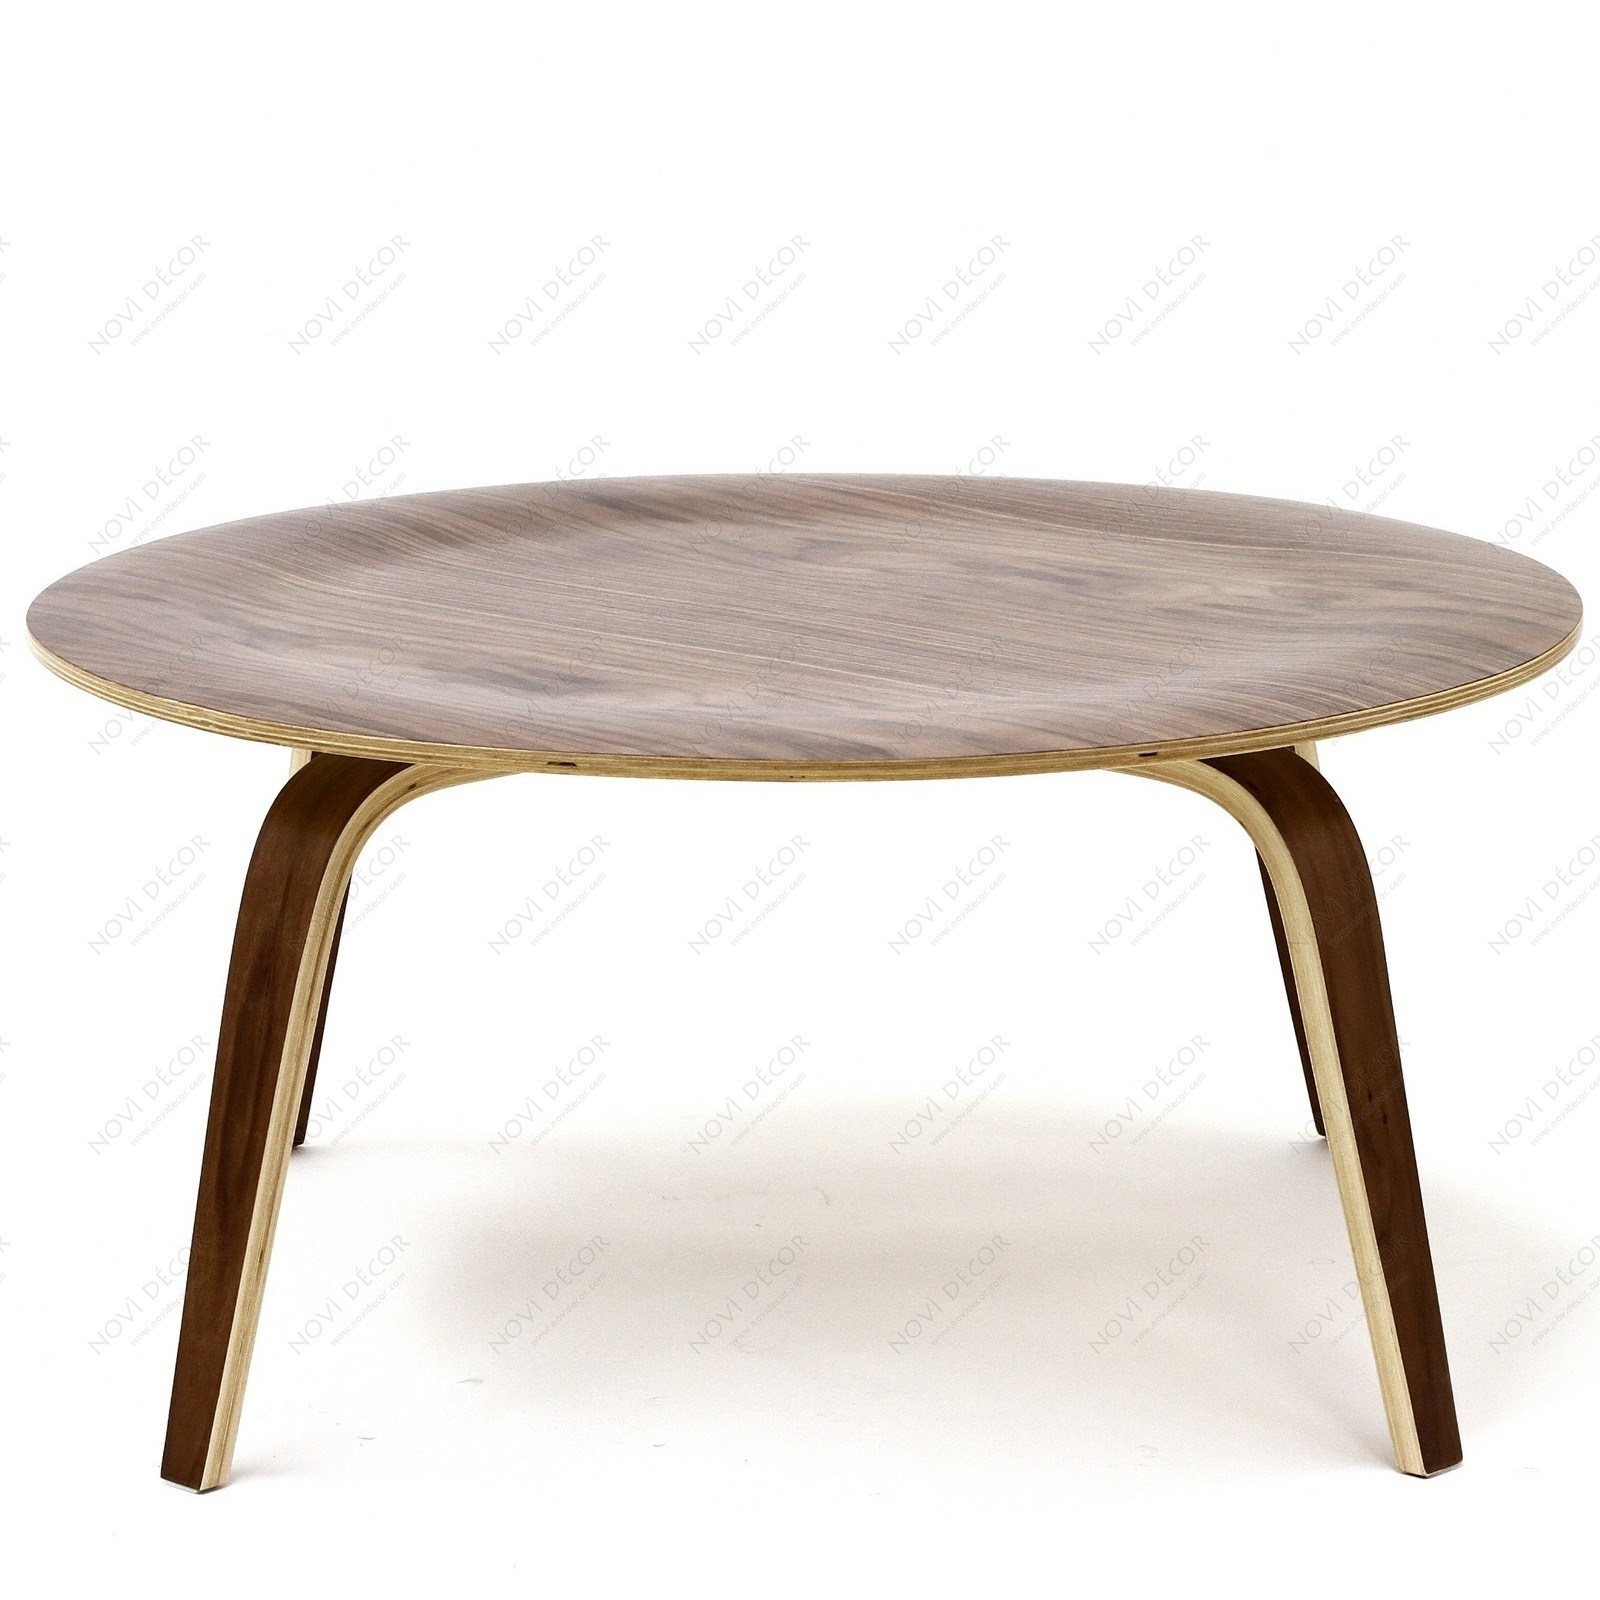 Image of: Creative Eames Coffee Table